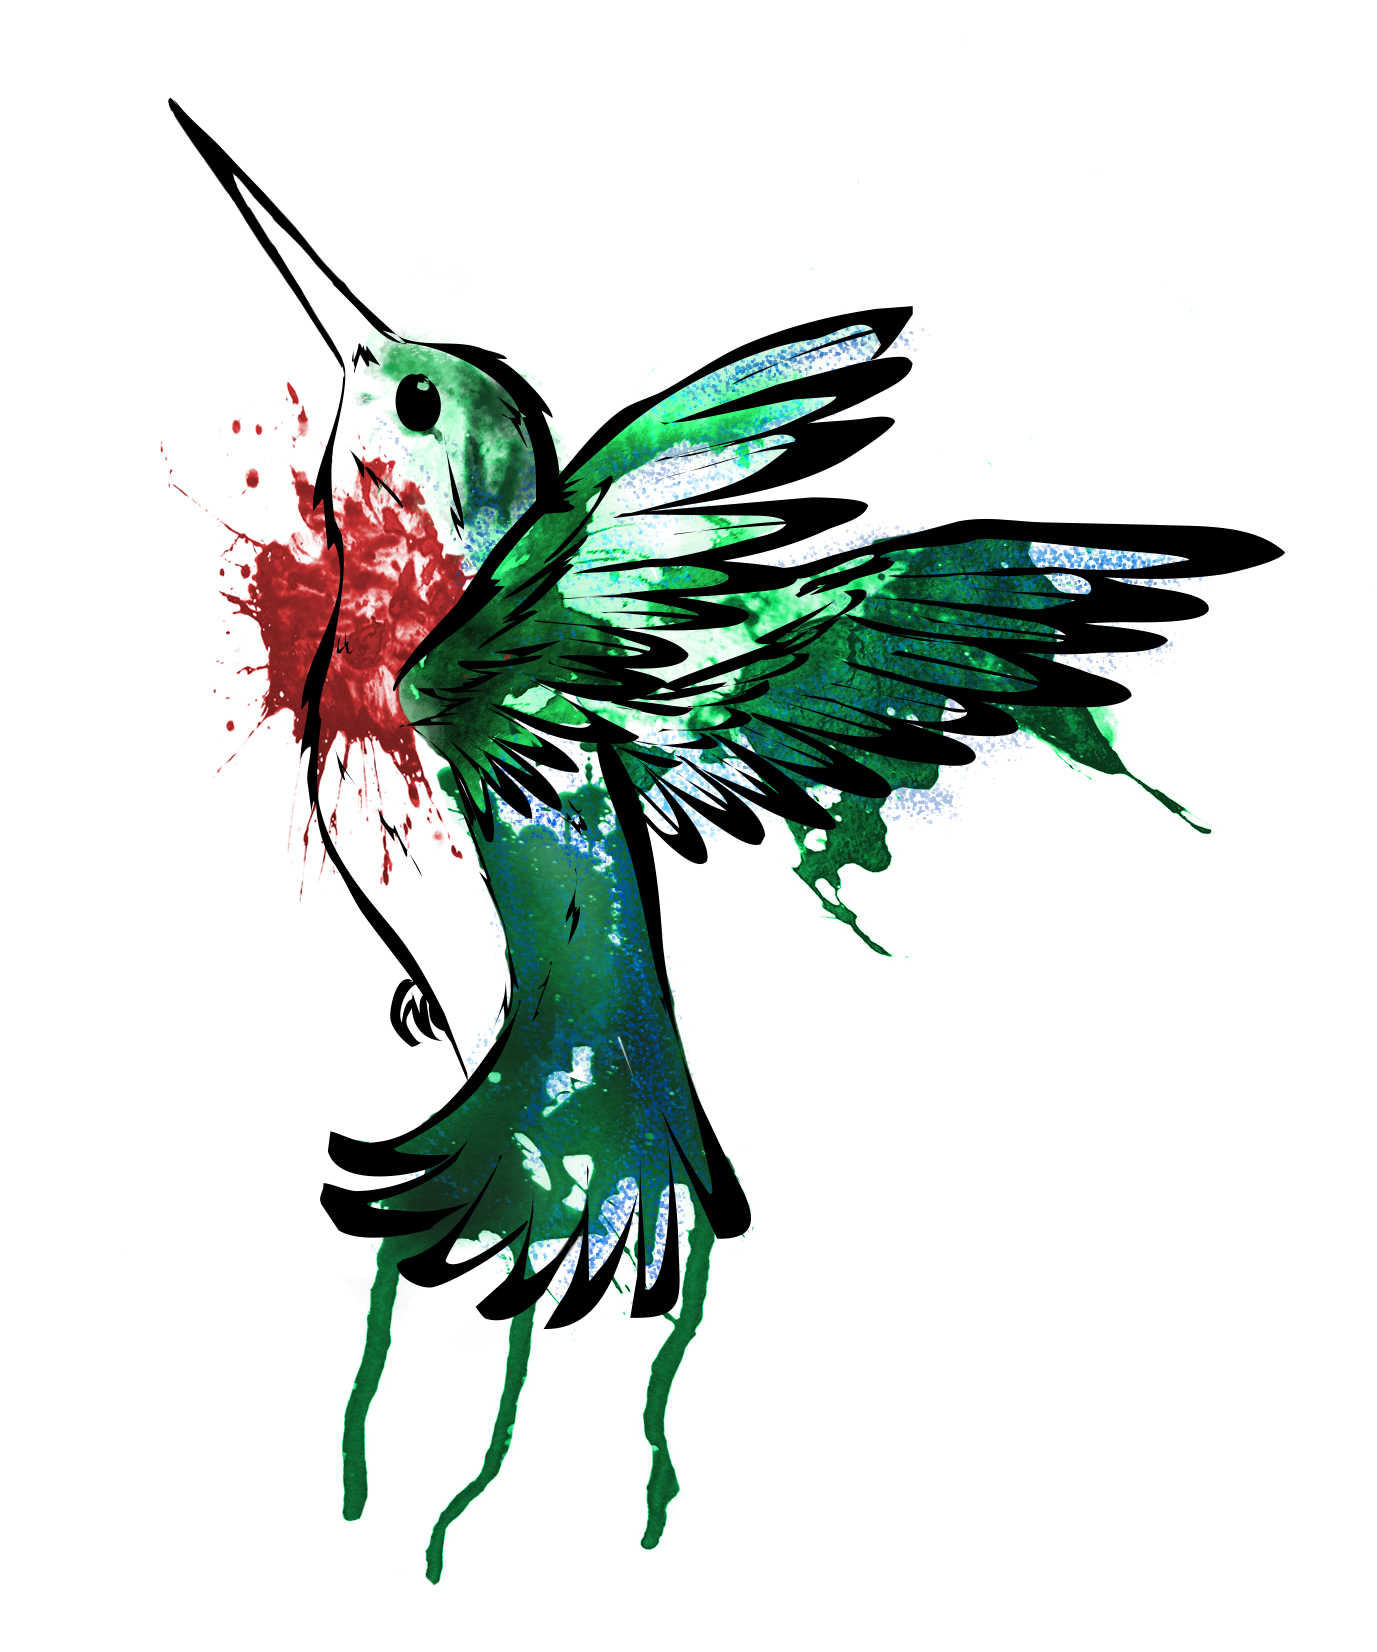 Green watercolor hummingbird with red heart spot tattoo design